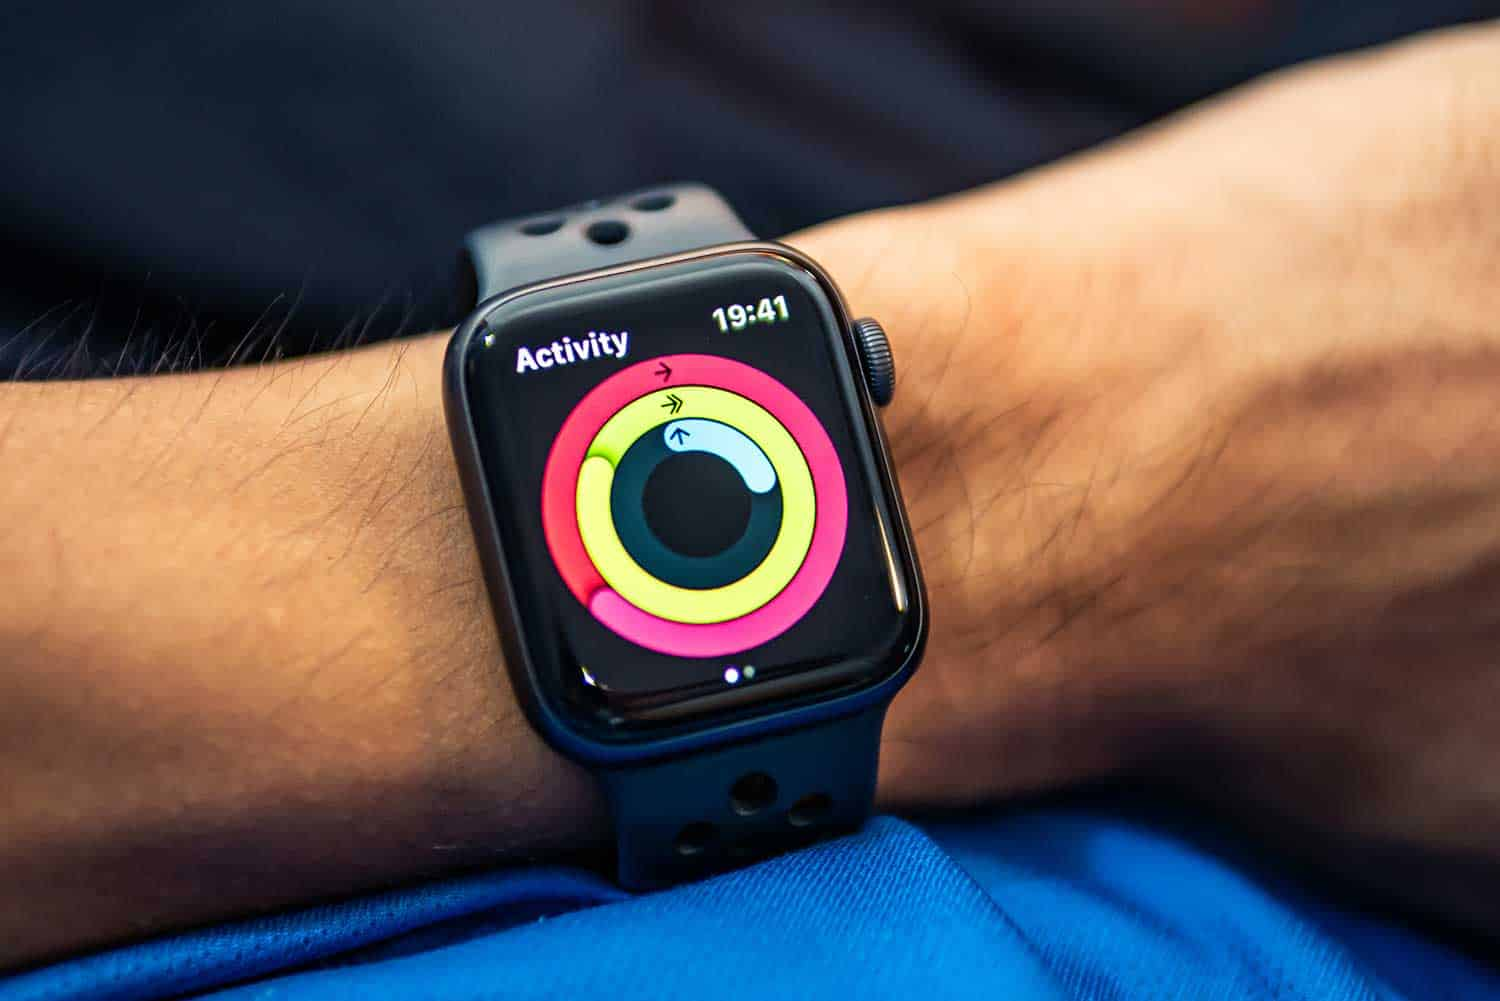 Apple Watch Nike+ Series 4 showing its screen with Activity Rings